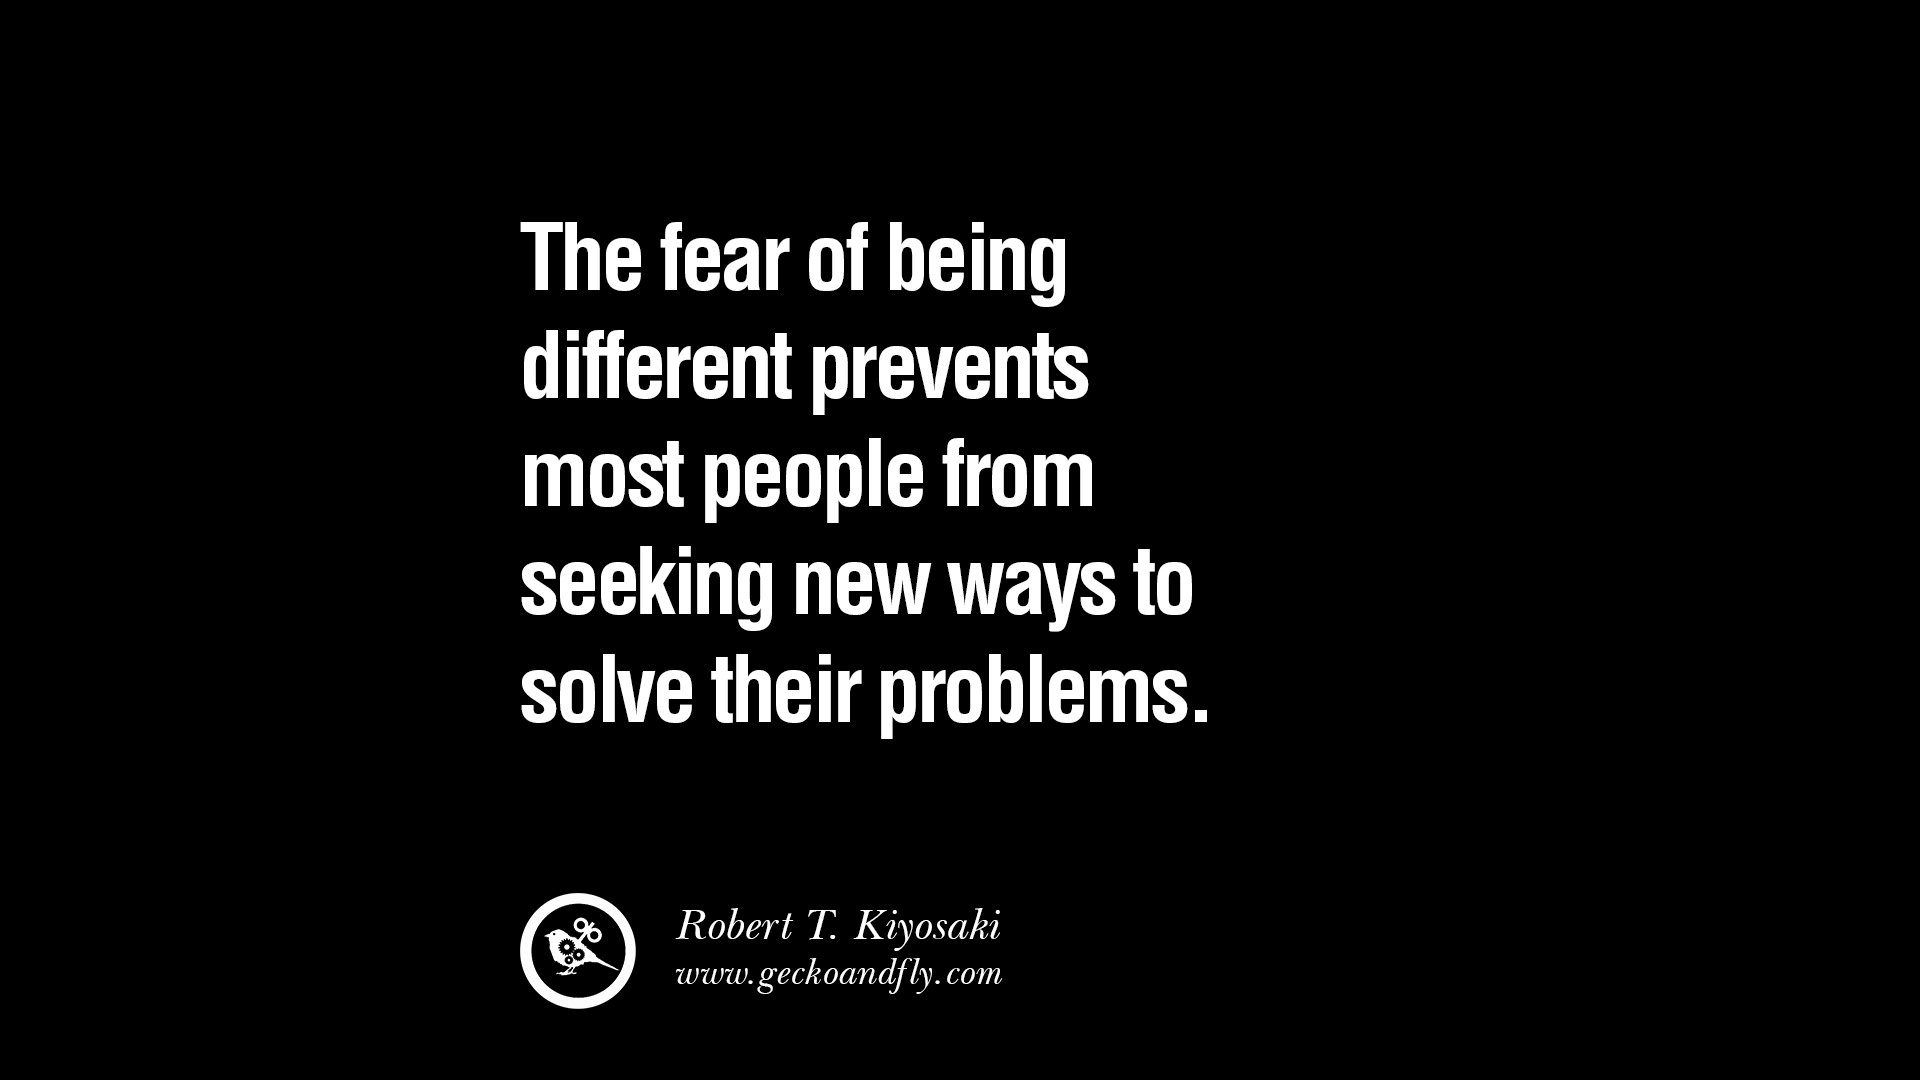 The fear of being different prevents most people from seeking new ways to solve their problems Robert Kiyosaki - How DVRT Helps Build More Successful Gyms